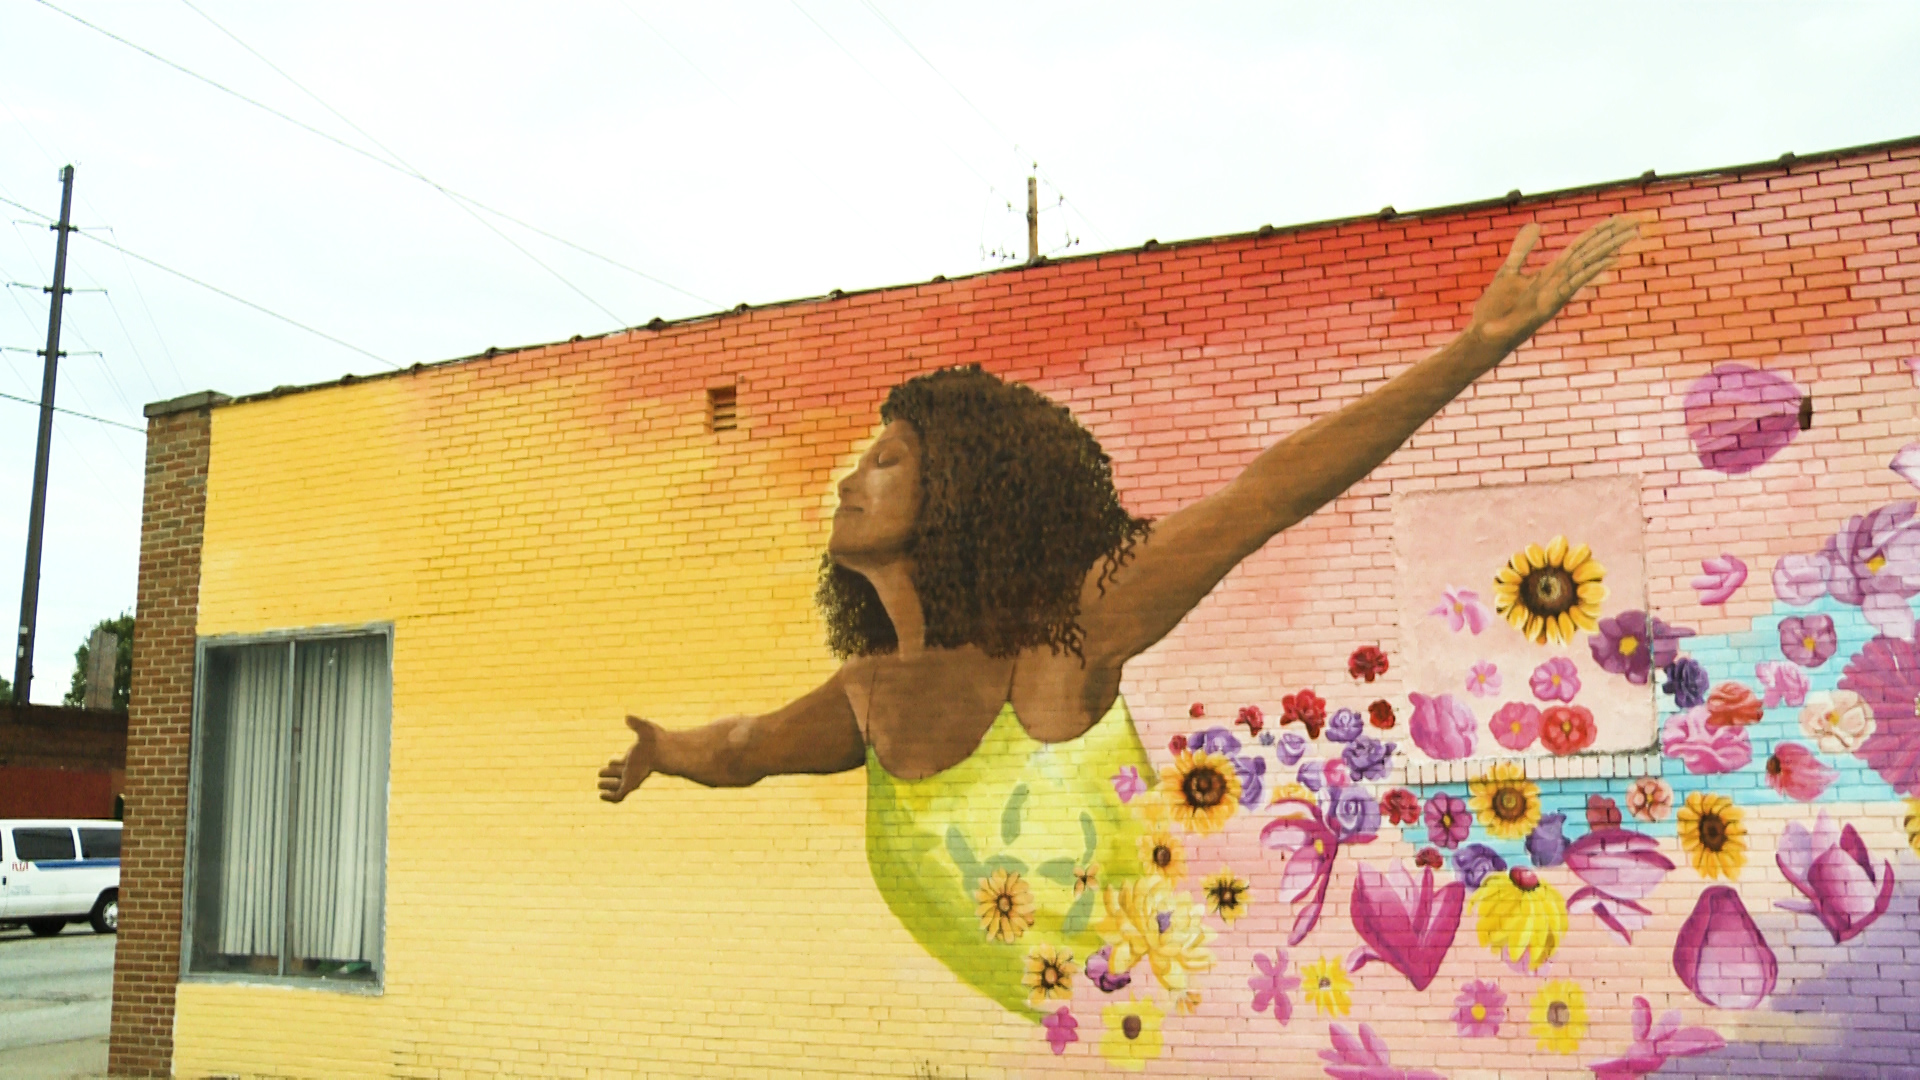 Cleveland Mural Paints Picture of Hope for Addiction Recovery